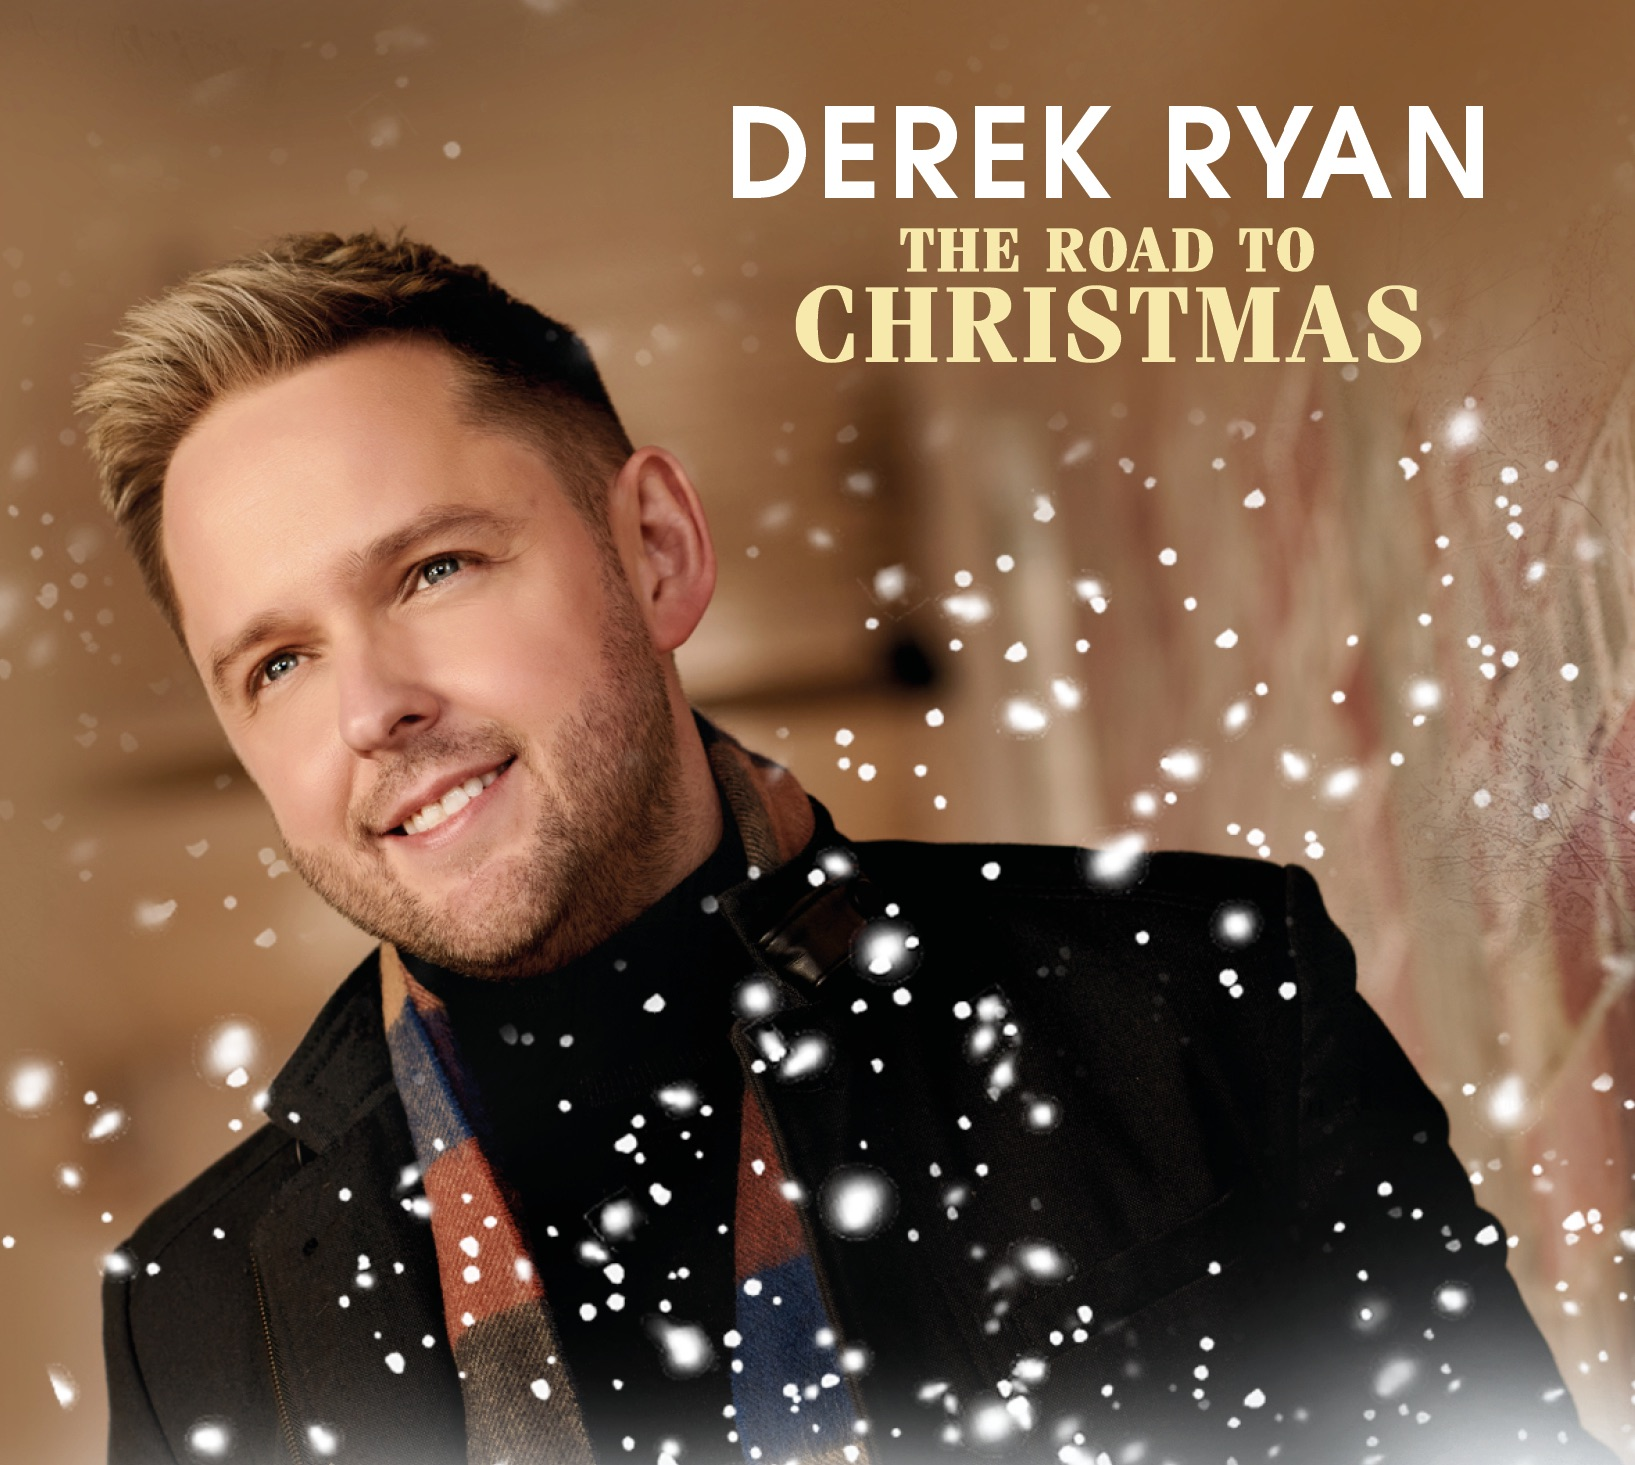 The Road To Christmas CD - Derek Ryan brand new album